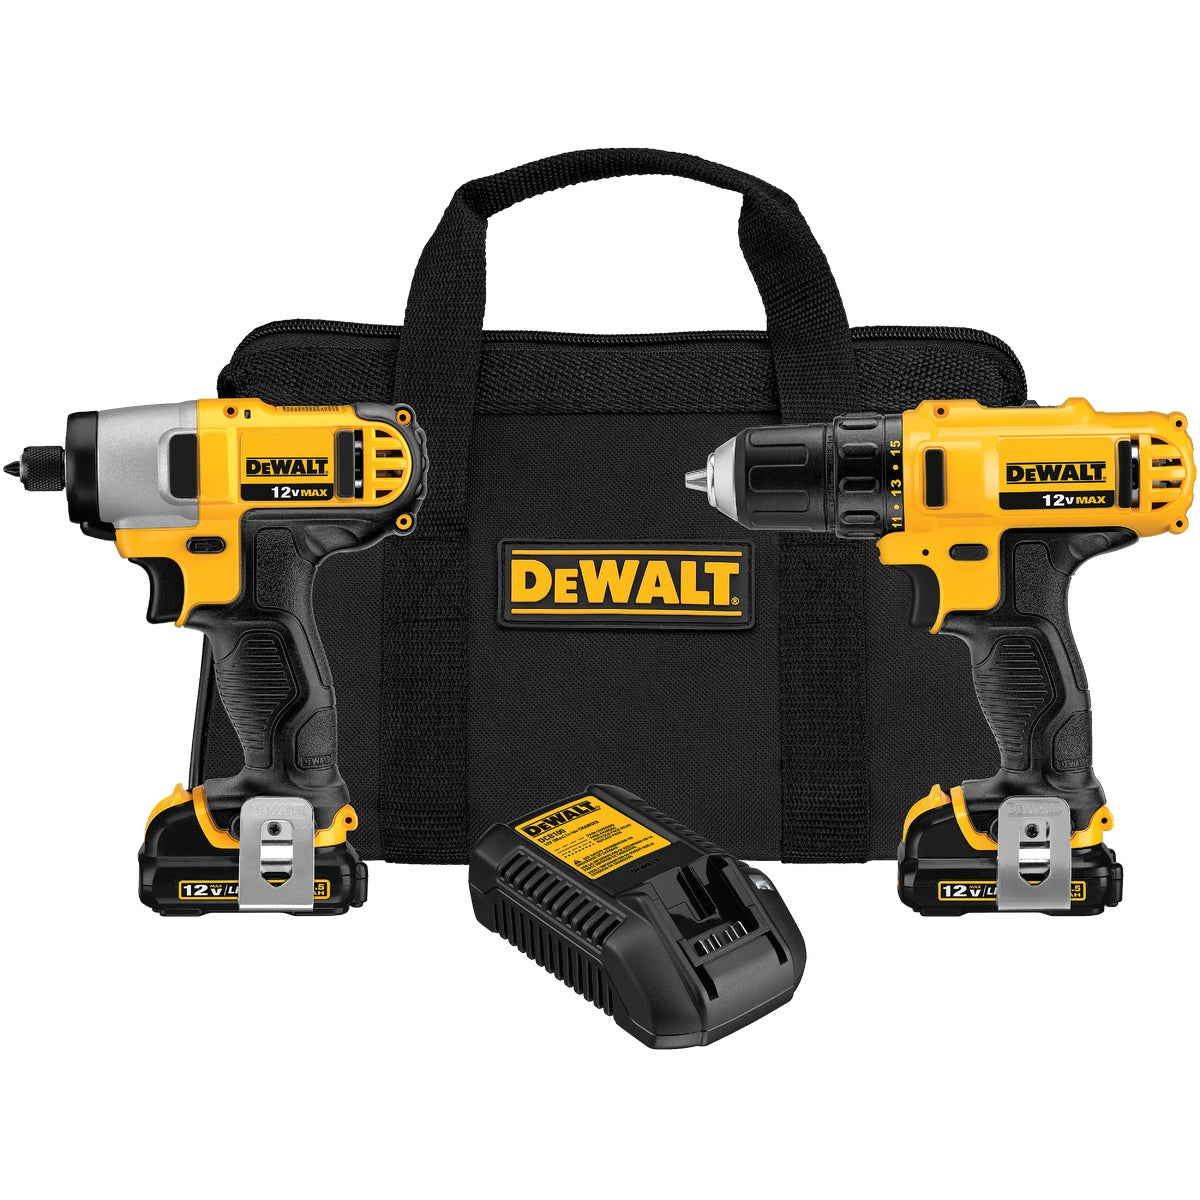 12V DRILL/IMPACT KIT - DCK211S2 by DeWalt